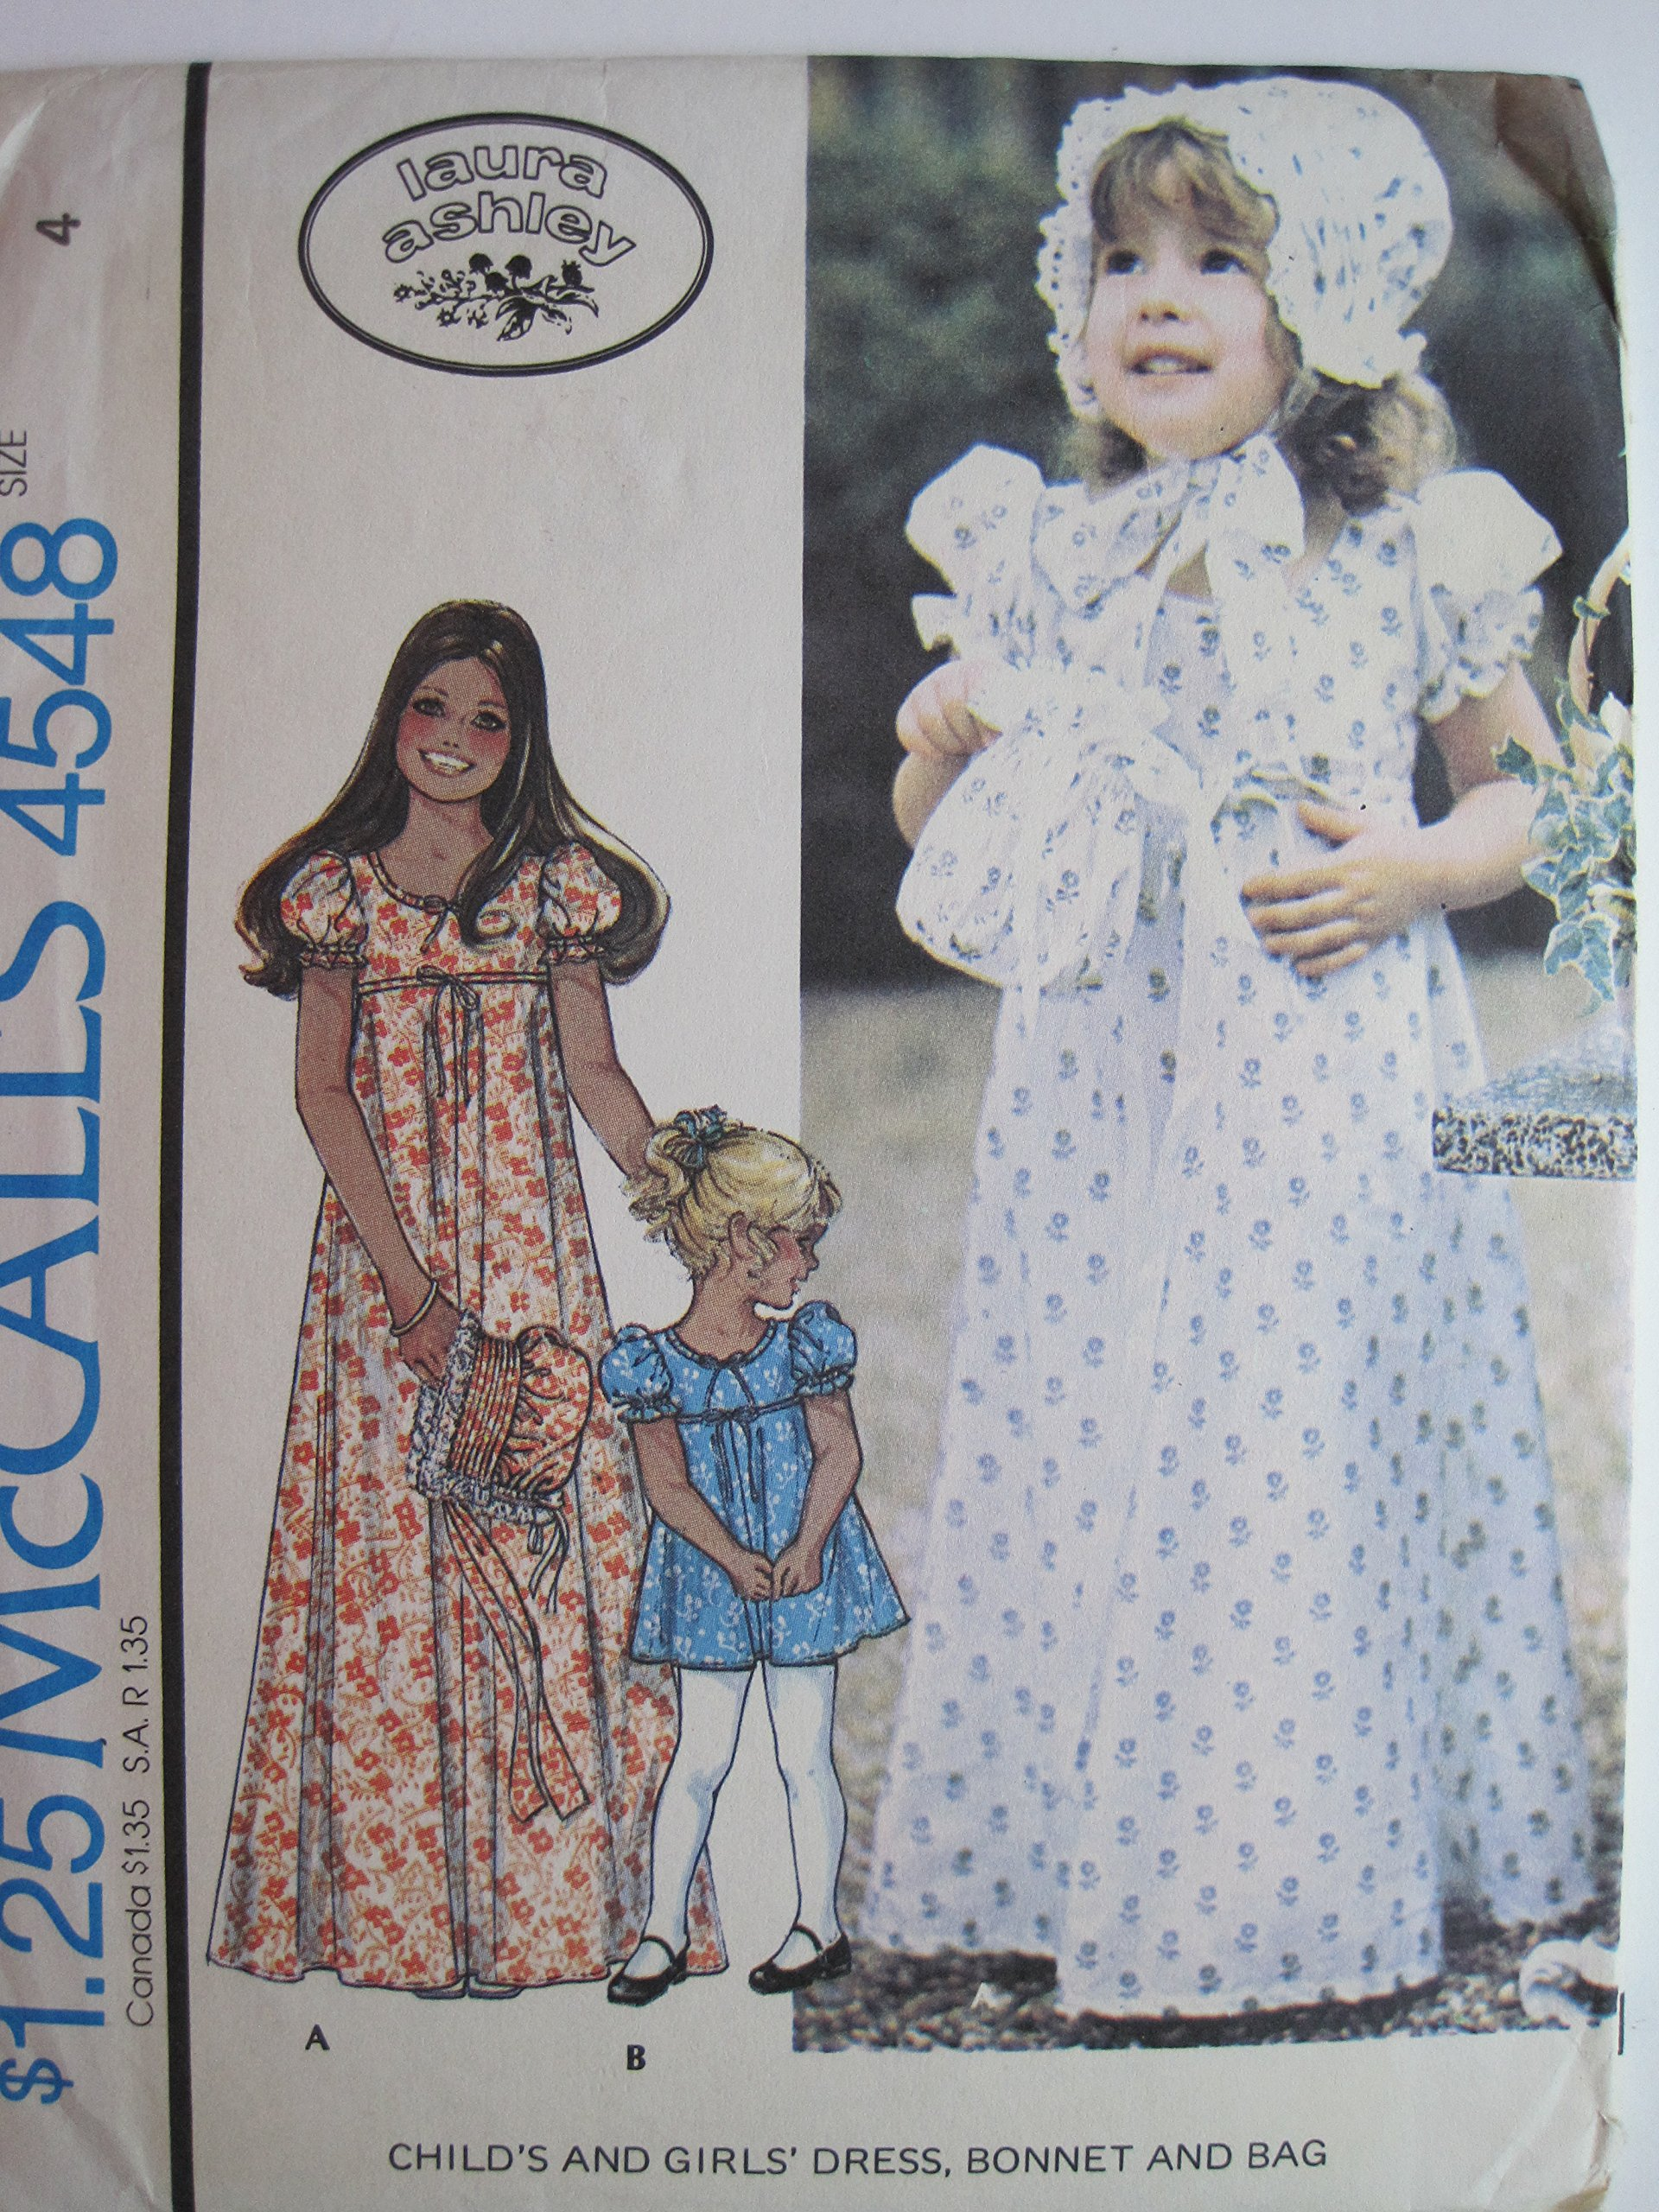 d3a3290420f9 McCall's Pattern 4548 Laura Ashley Child's Dress, Bonnet, and Bag ...